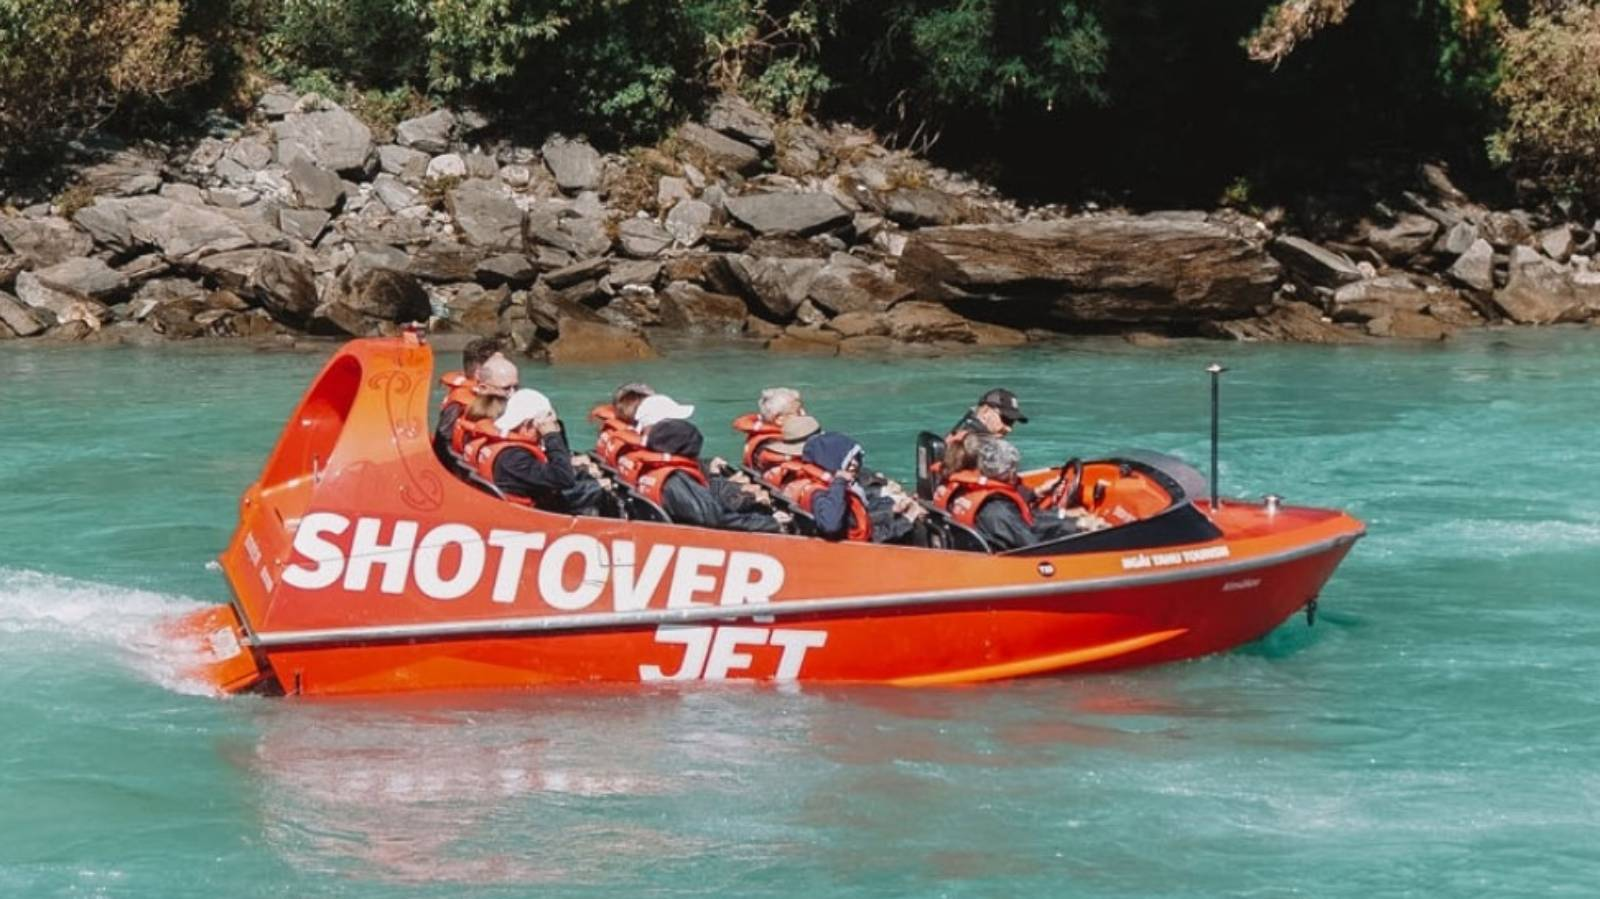 Have the need for speed? This thrill ride's for you